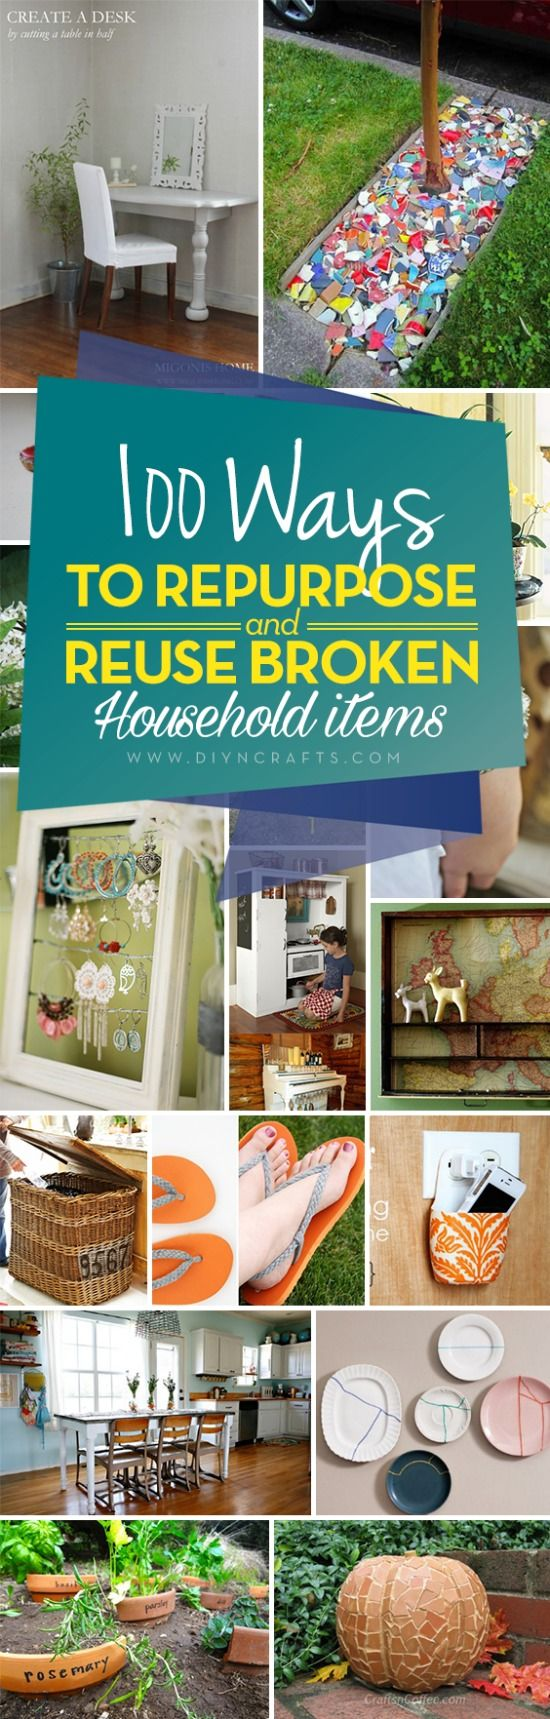 100 ways to recycle - 100 Ways To Repurpose And Reuse Broken Household Items Collection Curated By Diyncrafts Team